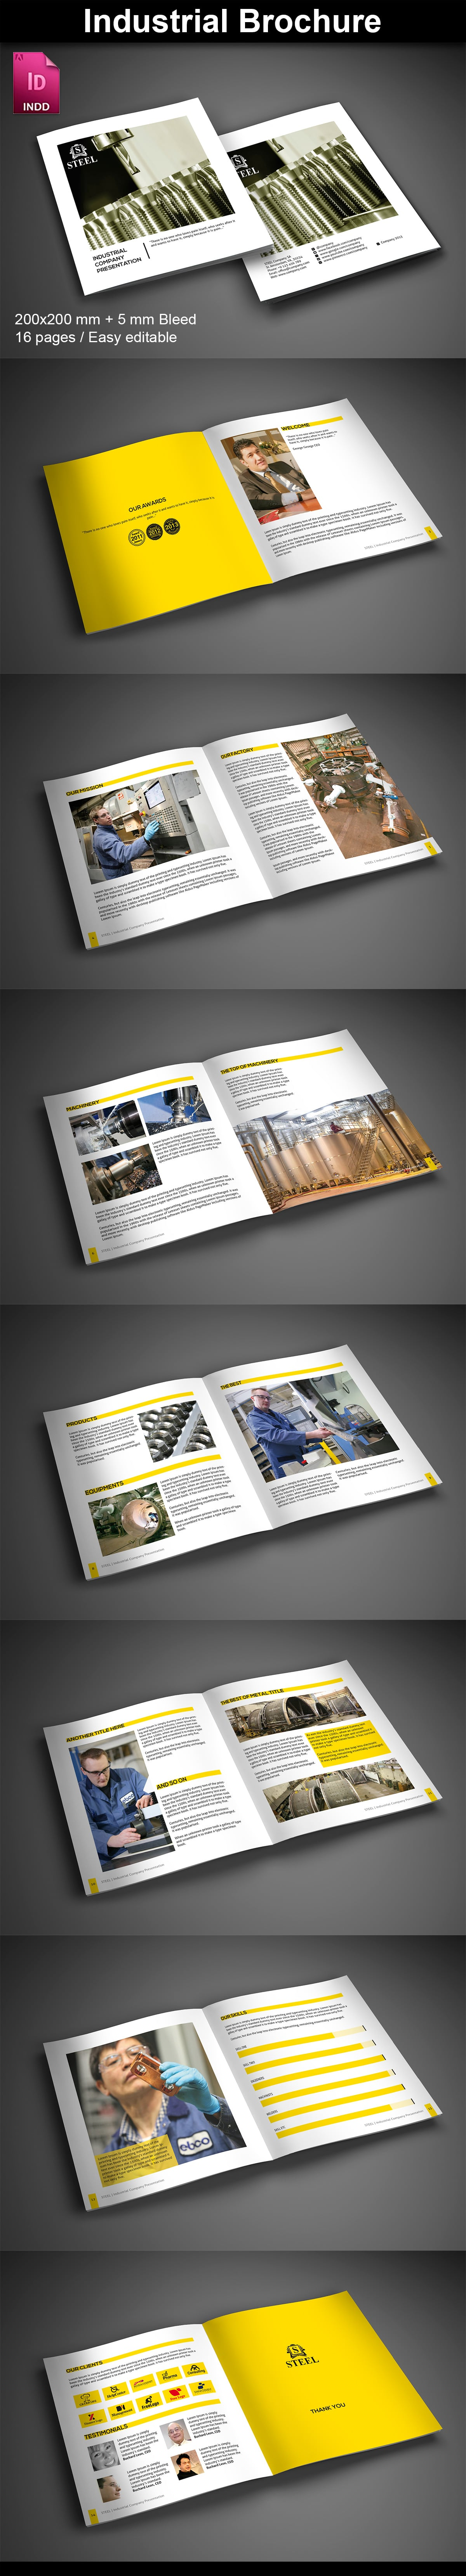 15  InDesign Product Catalogs - just $19 - 09 Industrial ImagePreview